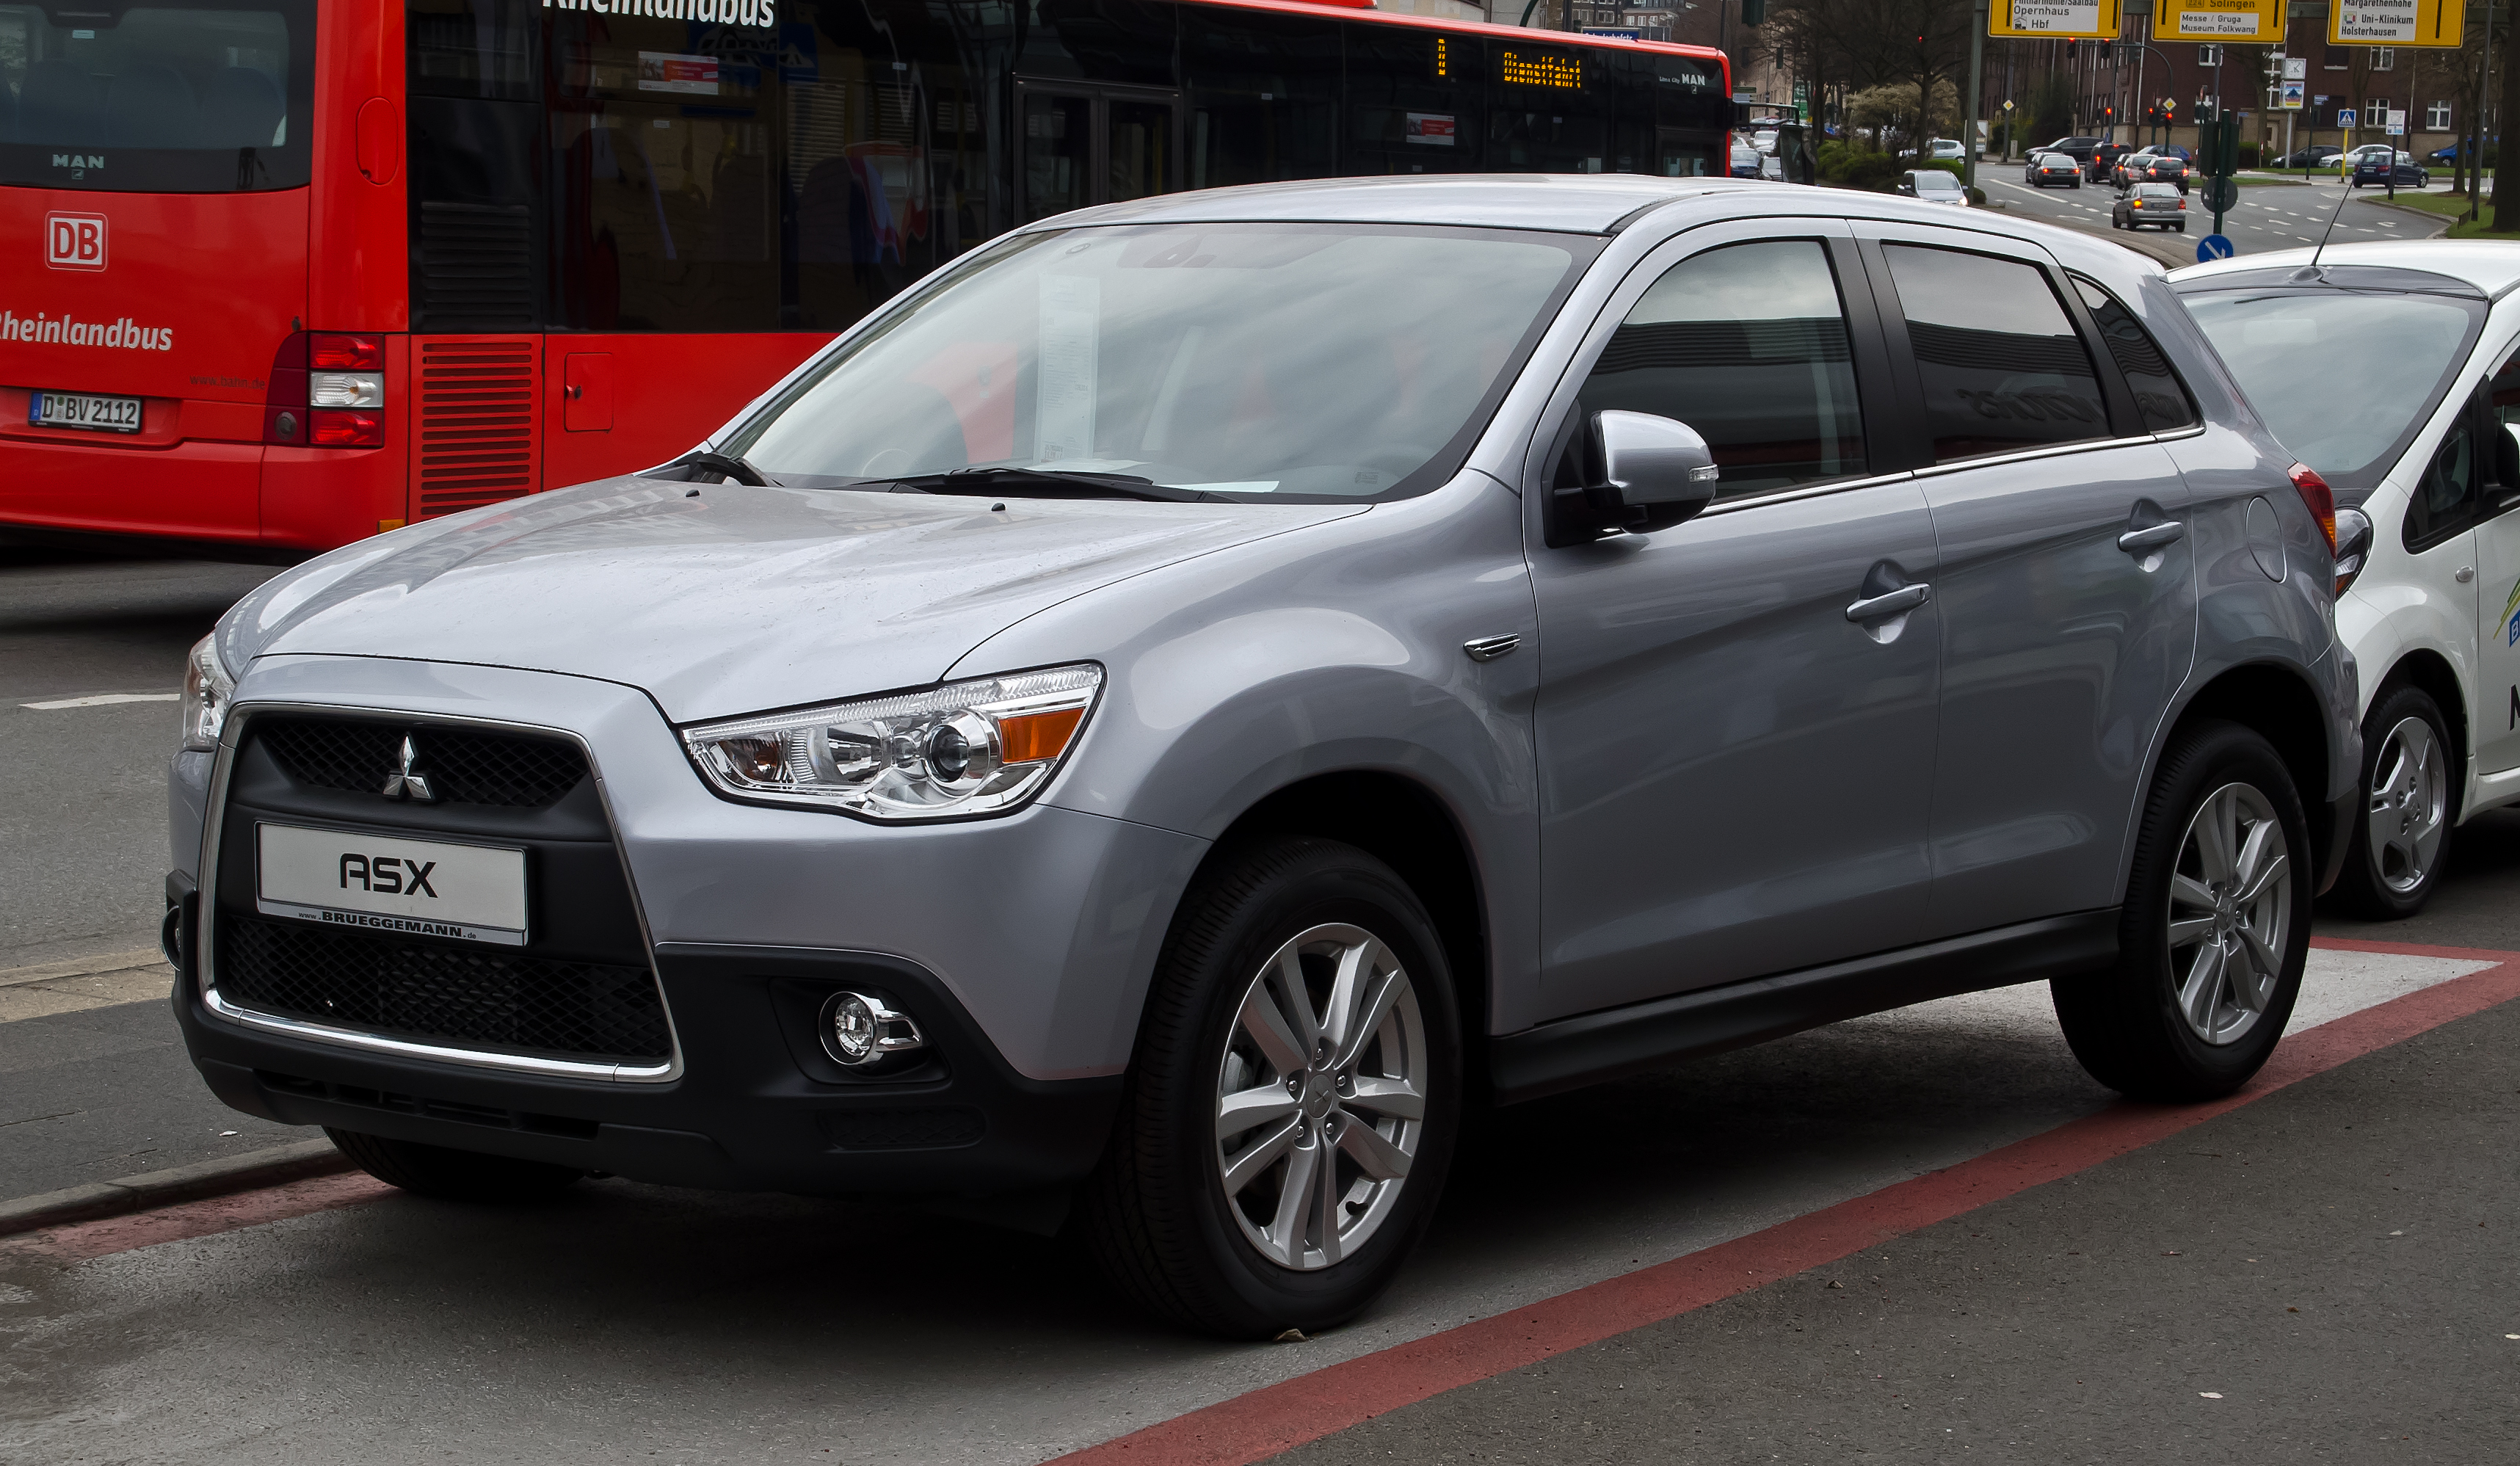 2010 Mitsubishi Asx – pictures, information and specs - Auto ...